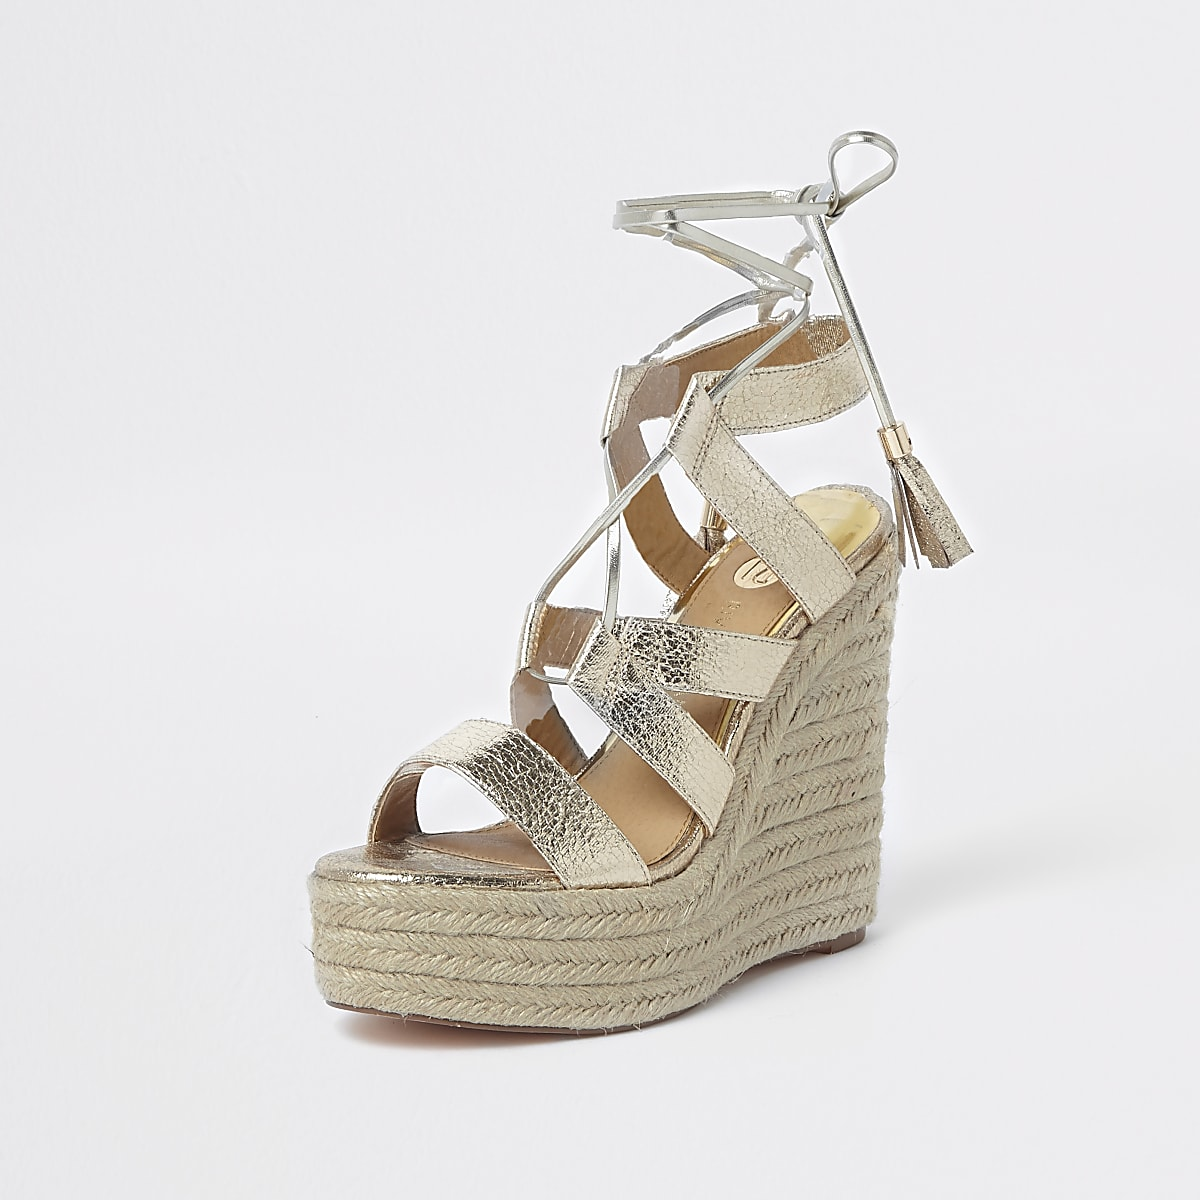 aac089f12ea4 Gold metallic tie-up espadrille wedges - Sandals - Shoes   Boots - women